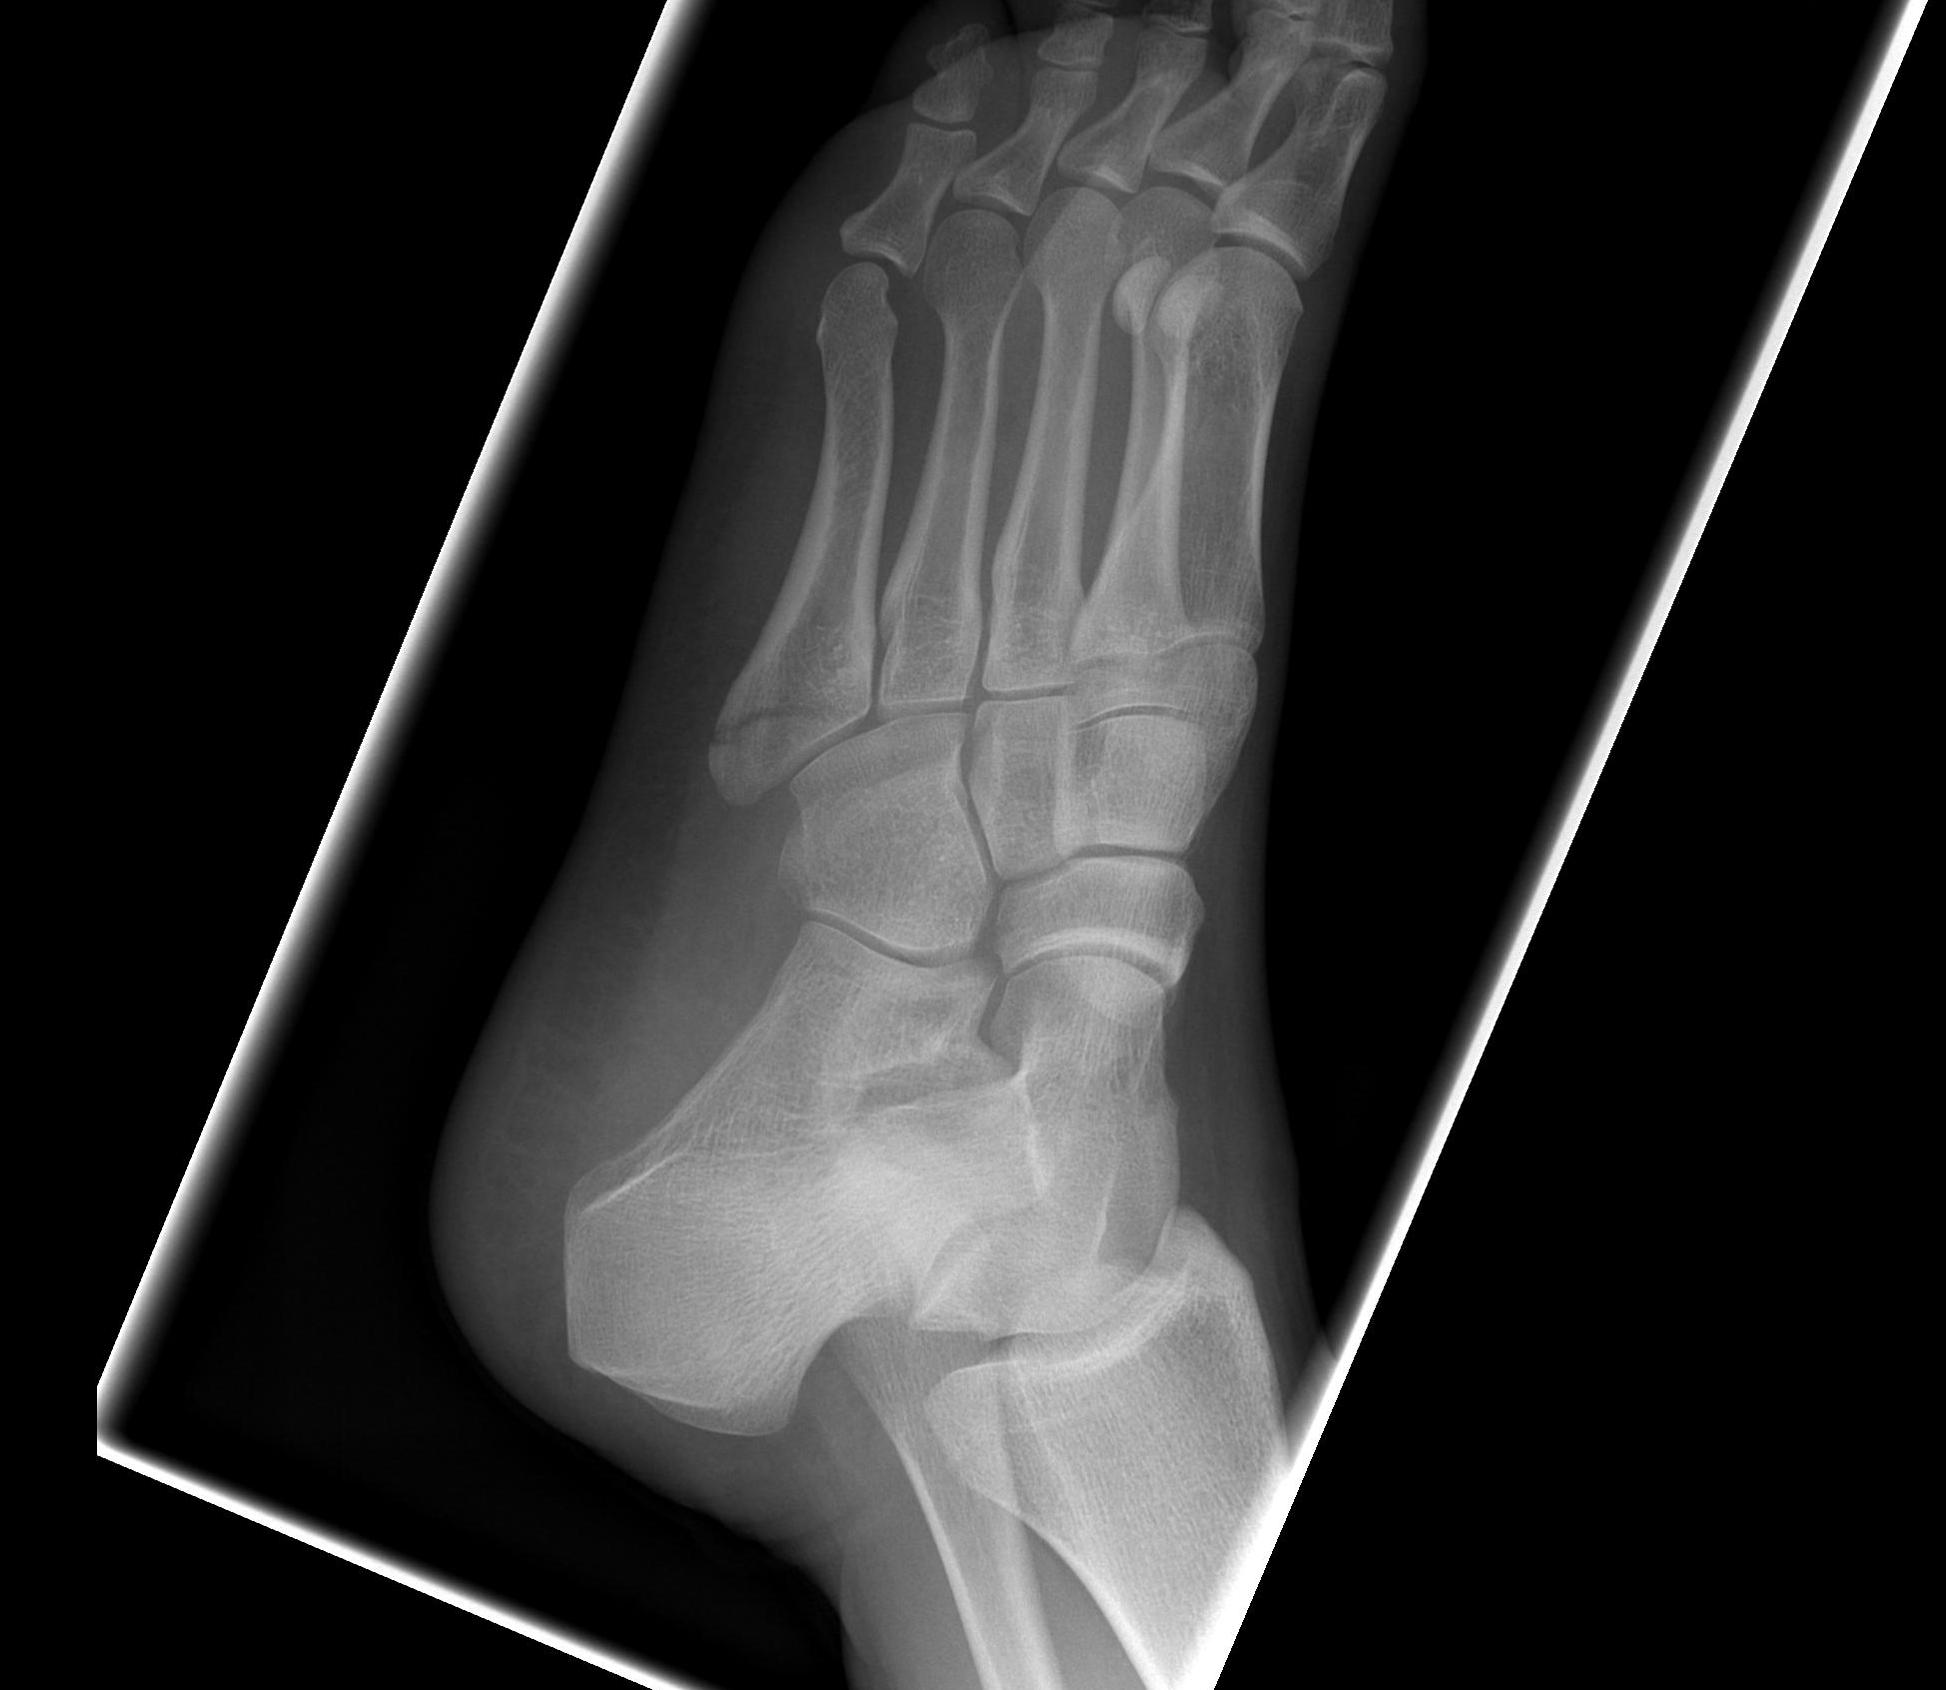 Fifth Metatarsal Undisplaced Avulsion Fracture